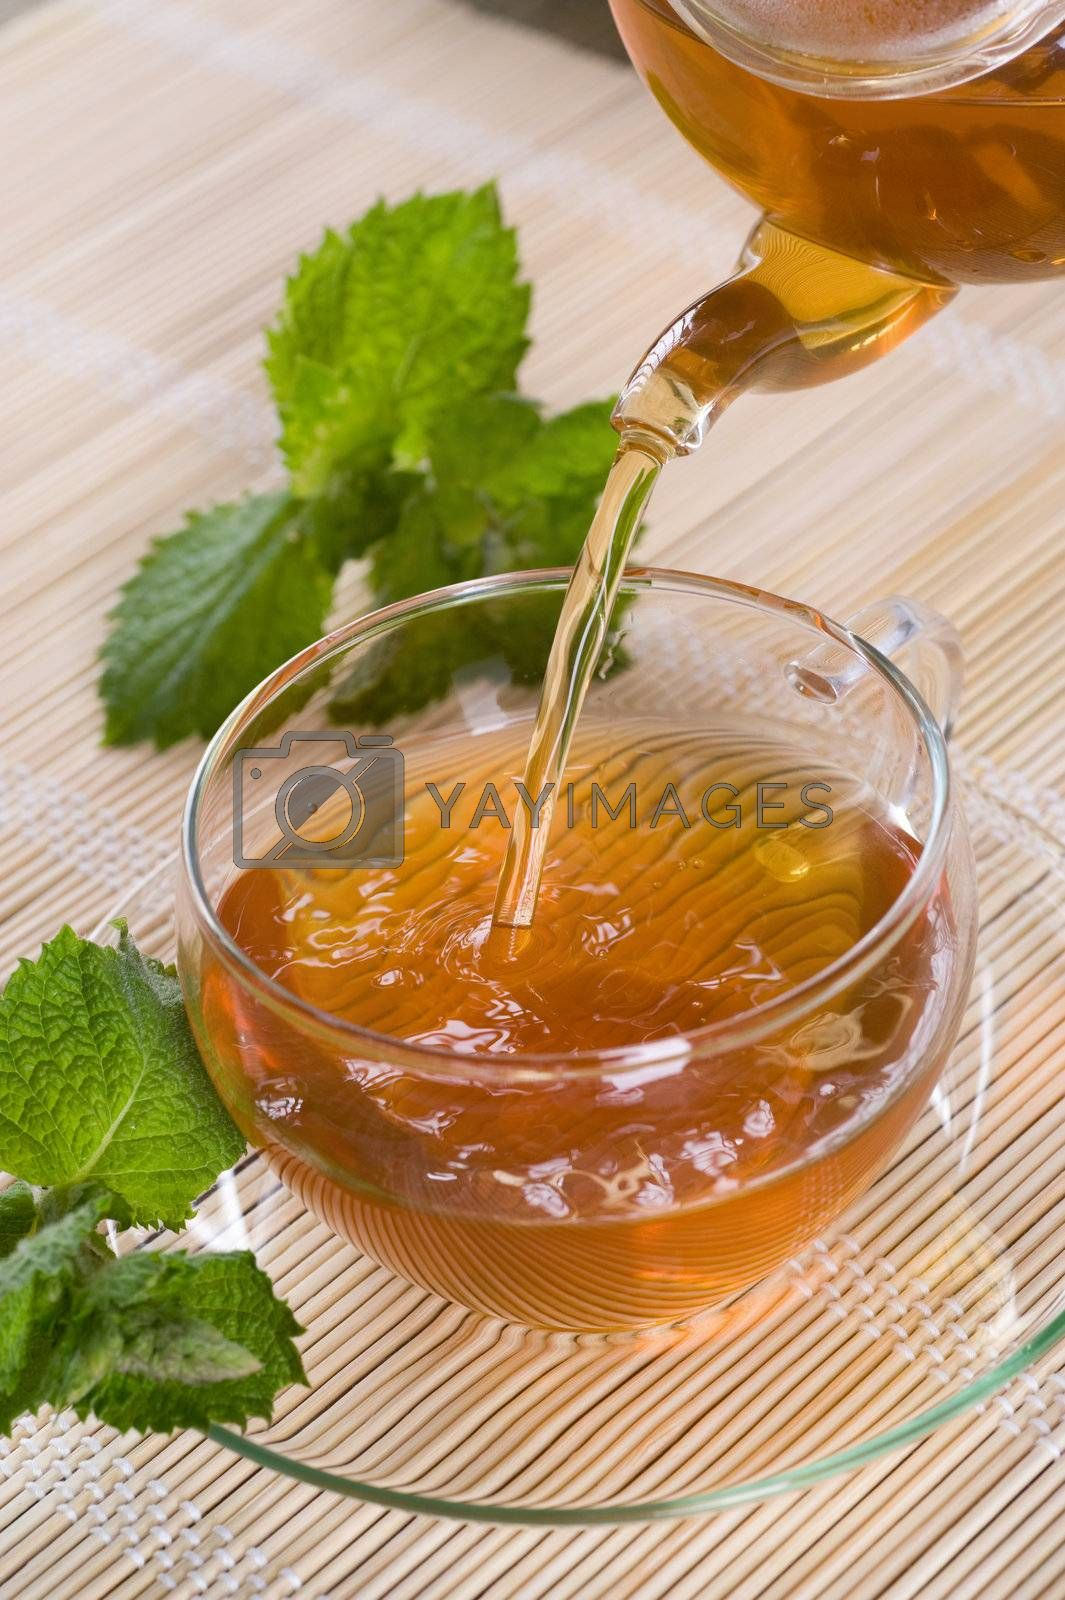 Pouring Healthy Tea by Subbotina Anna